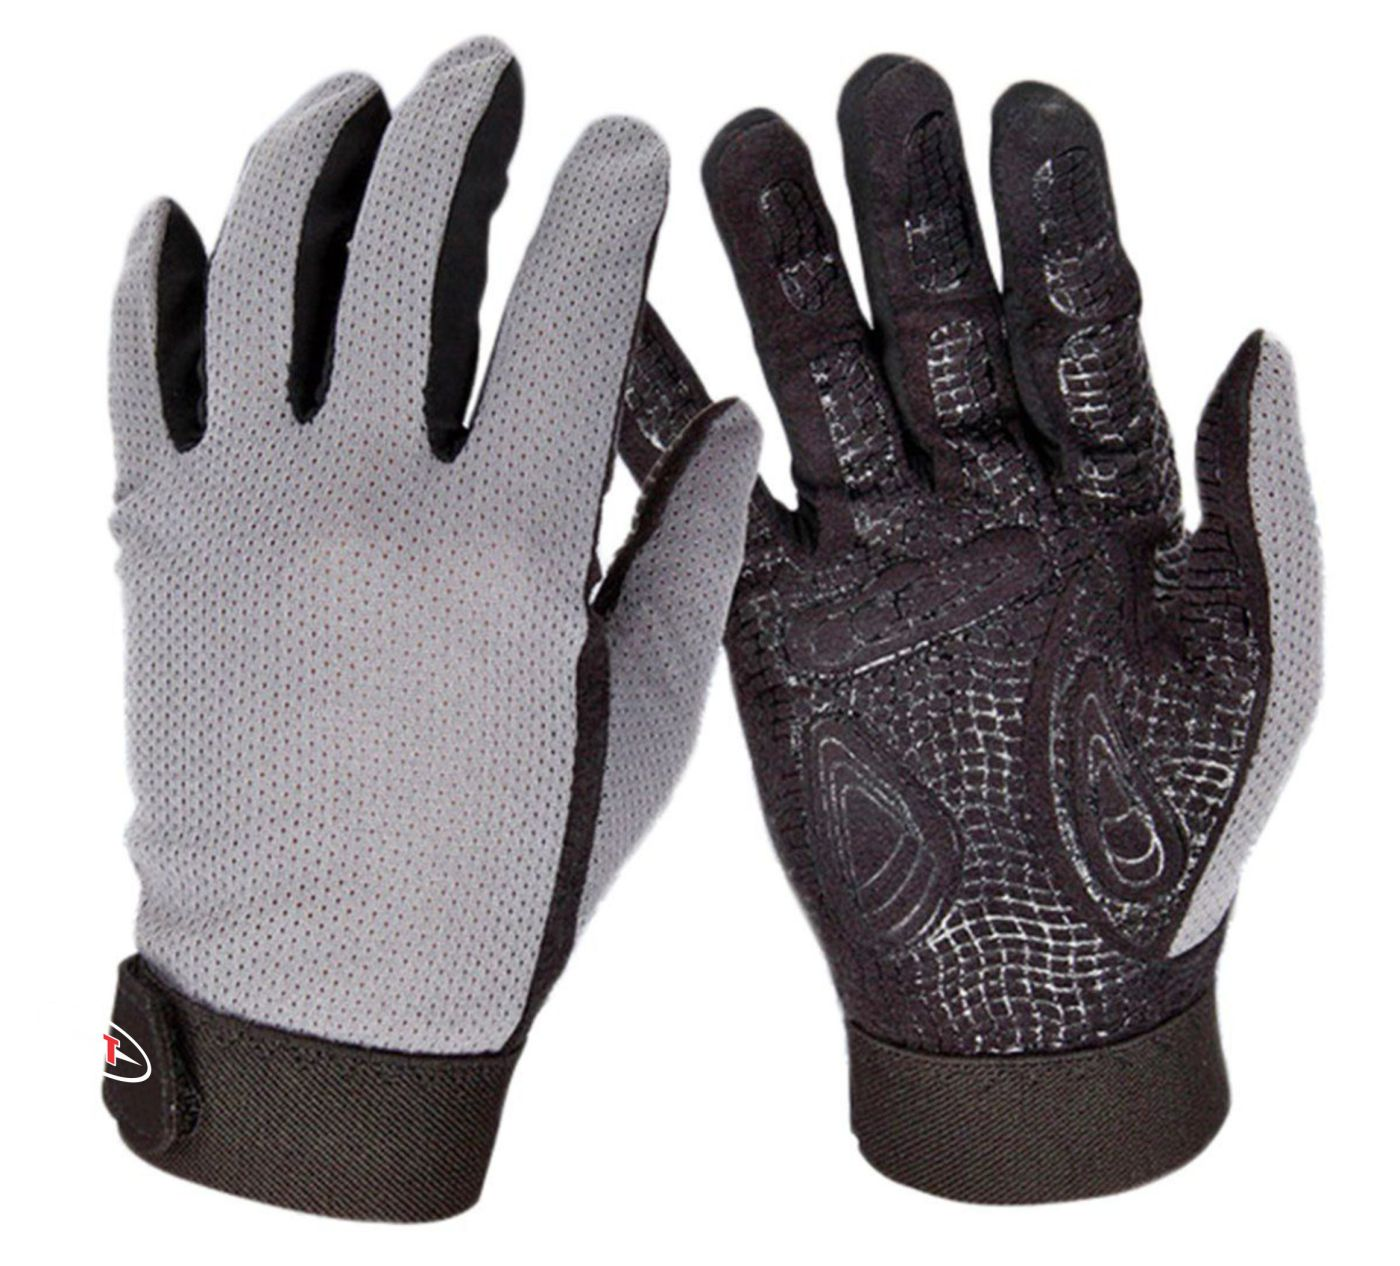 Crossfit Full finger Gloves - ACS-1566